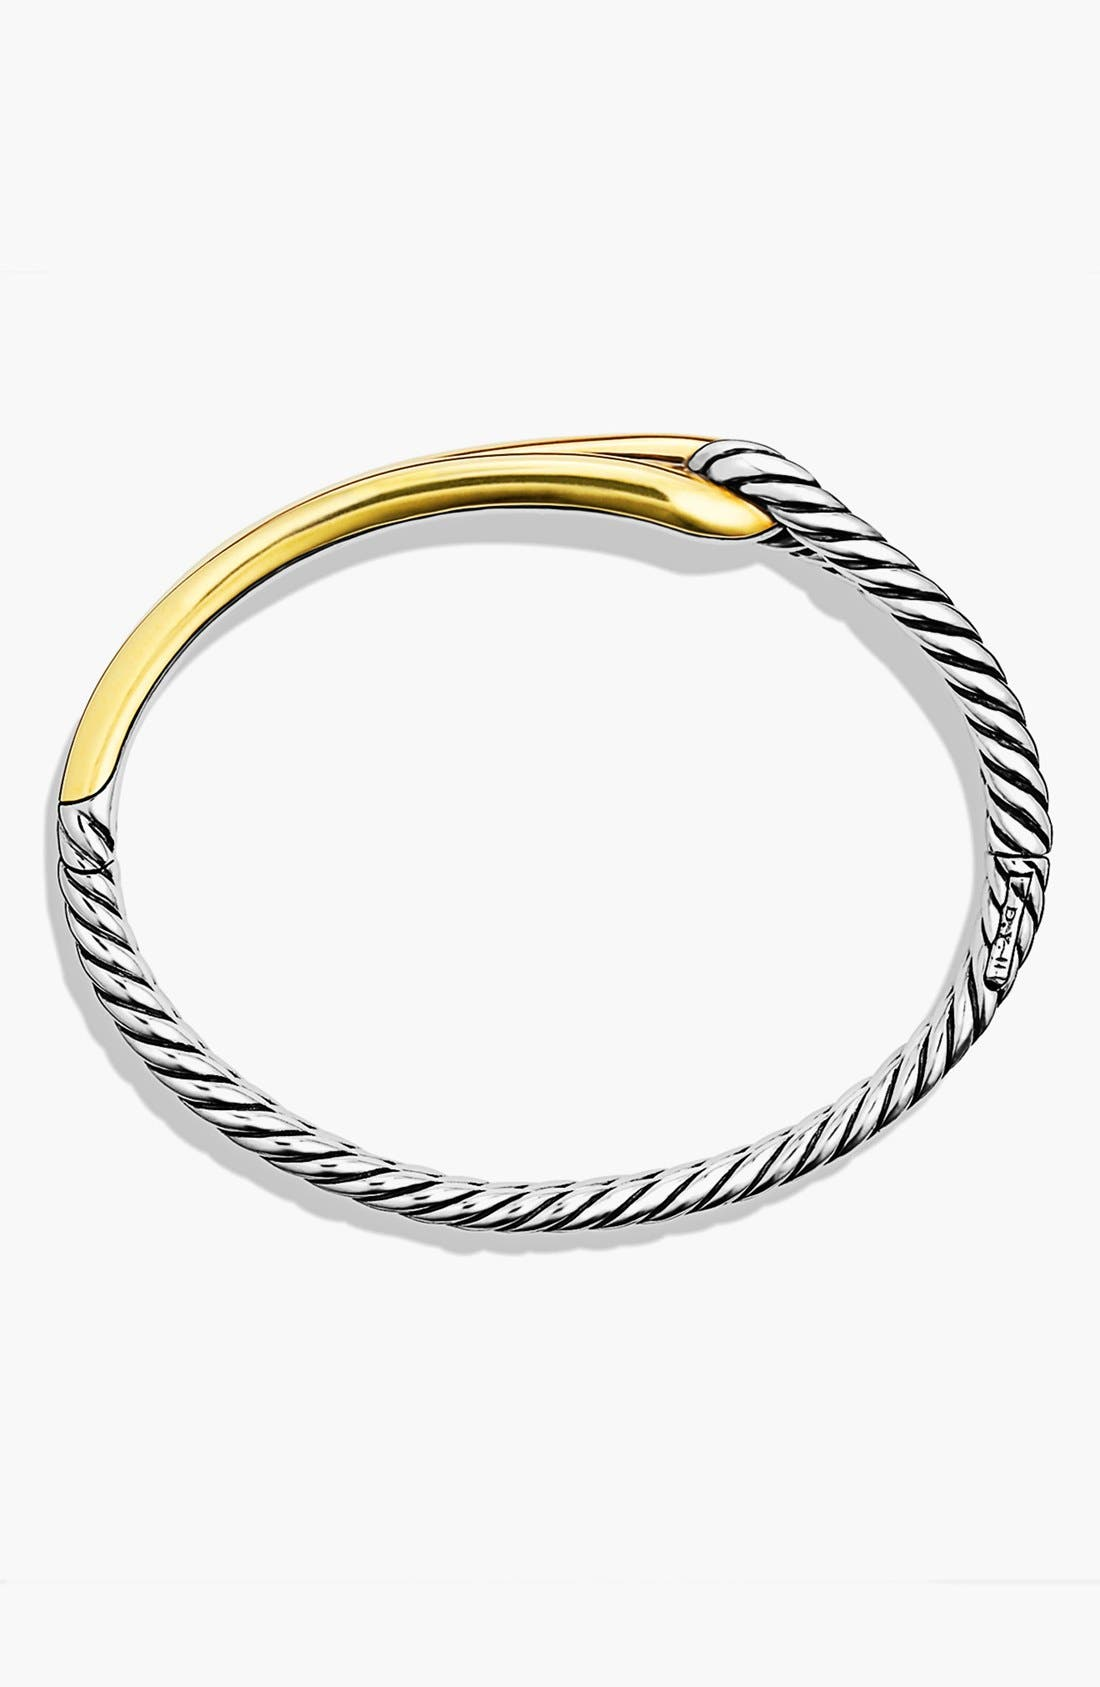 'Labyrinth' Single-Loop Bracelet with Gold,                             Alternate thumbnail 4, color,                             040